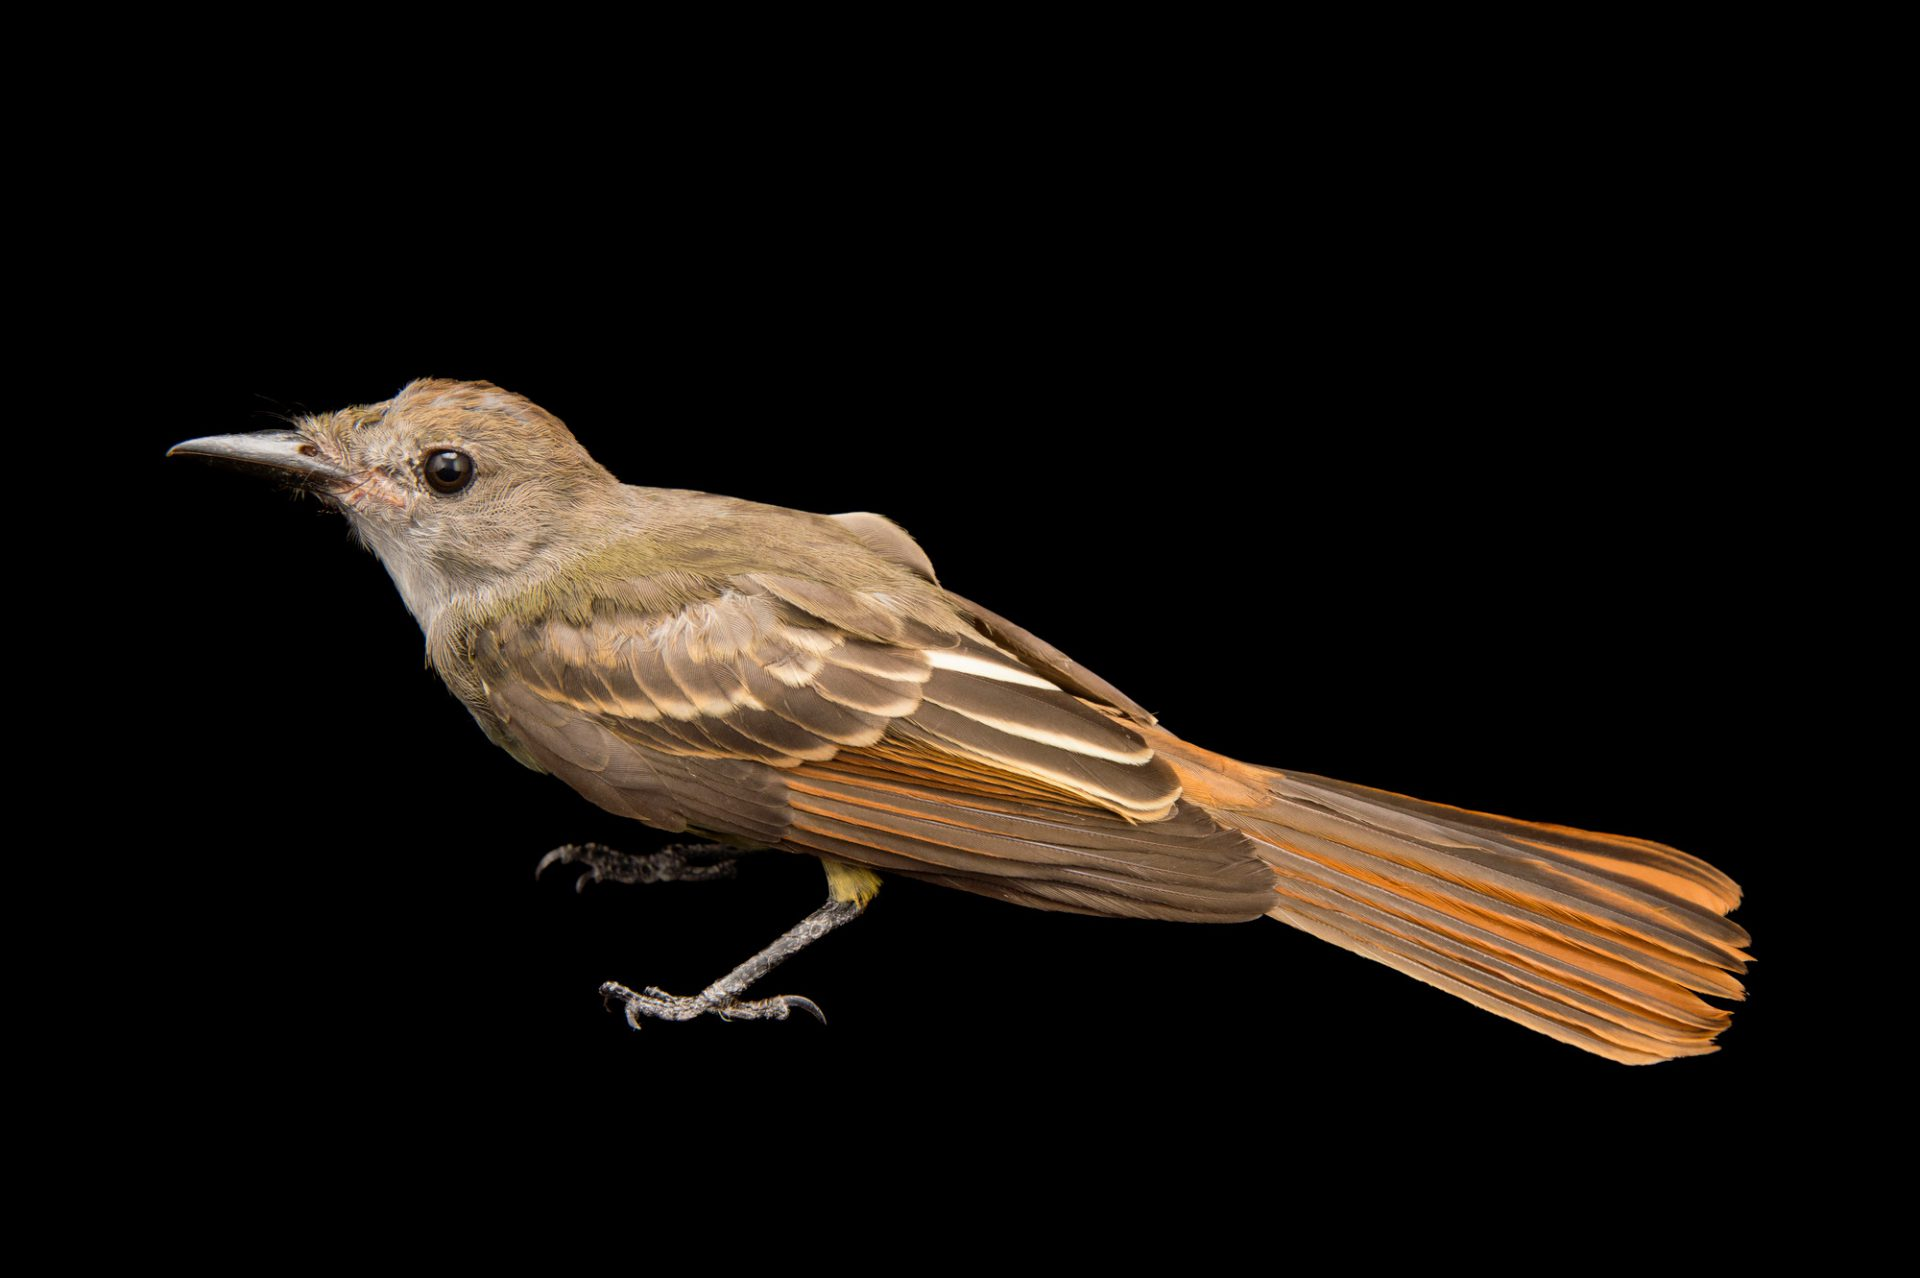 Picture of a great crested flycatcher (Myiarchus crinitus) at the Wichita Mountains National Wildlife Refuge.